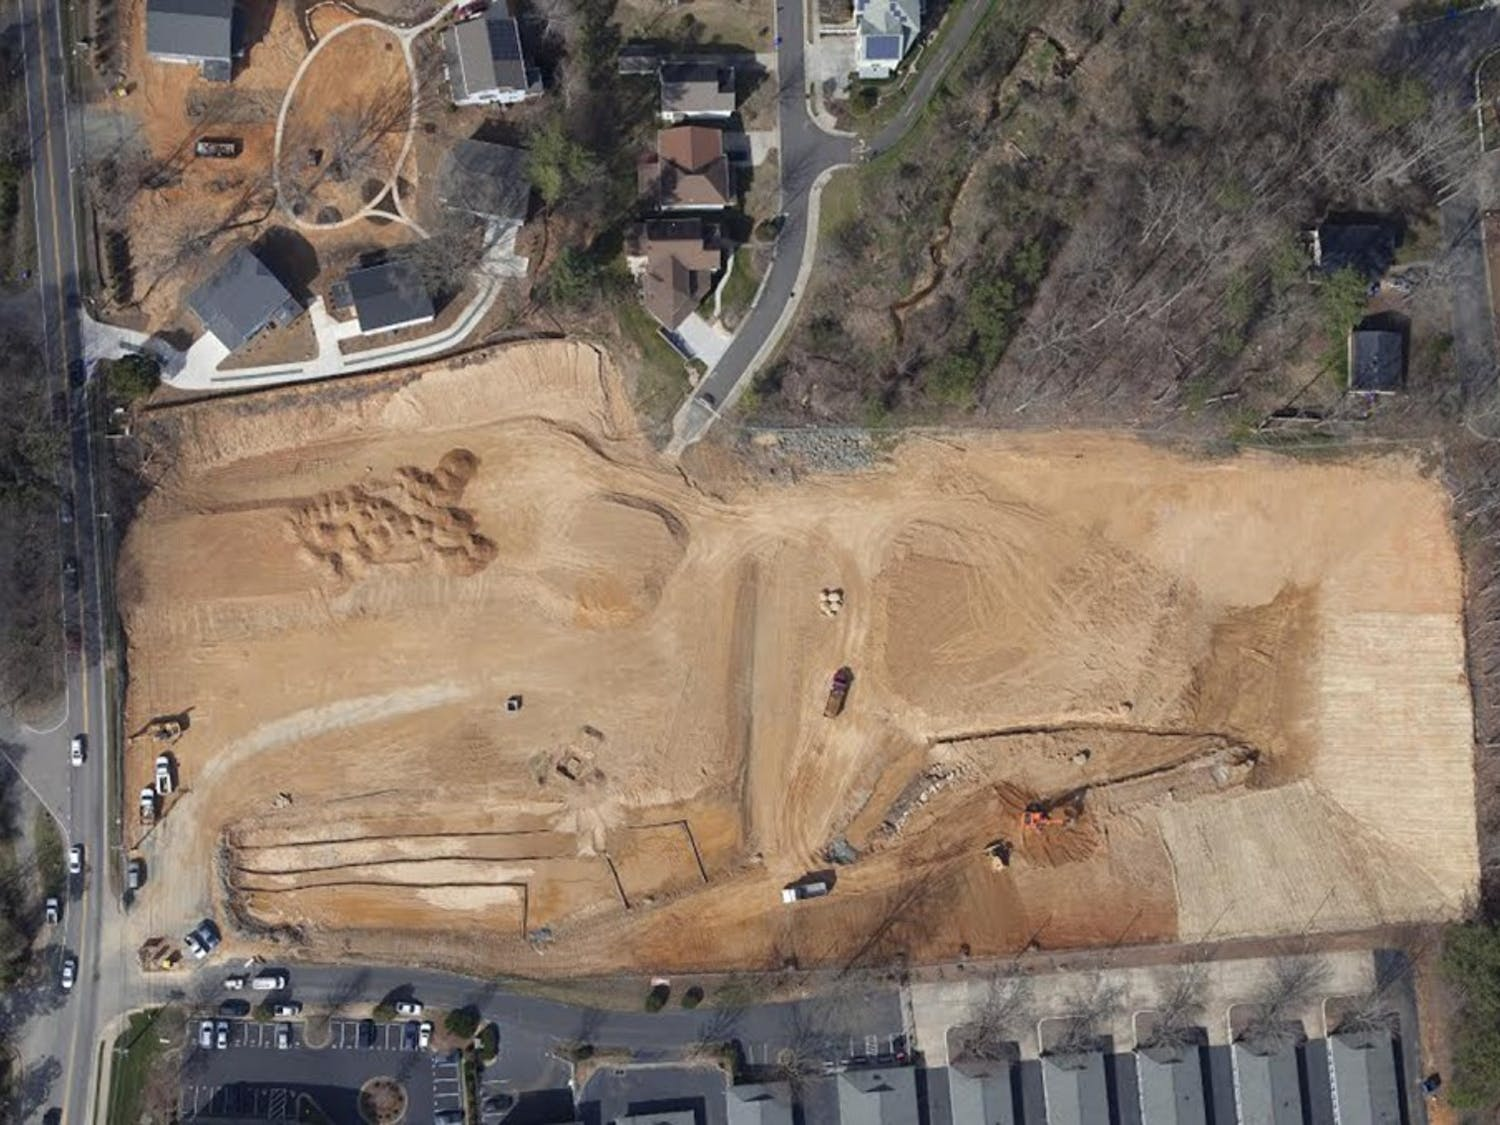 A new development coming to Carrboro has caused concern for residents based on some aspects of construction.Photo courtesy of Gary Hill.